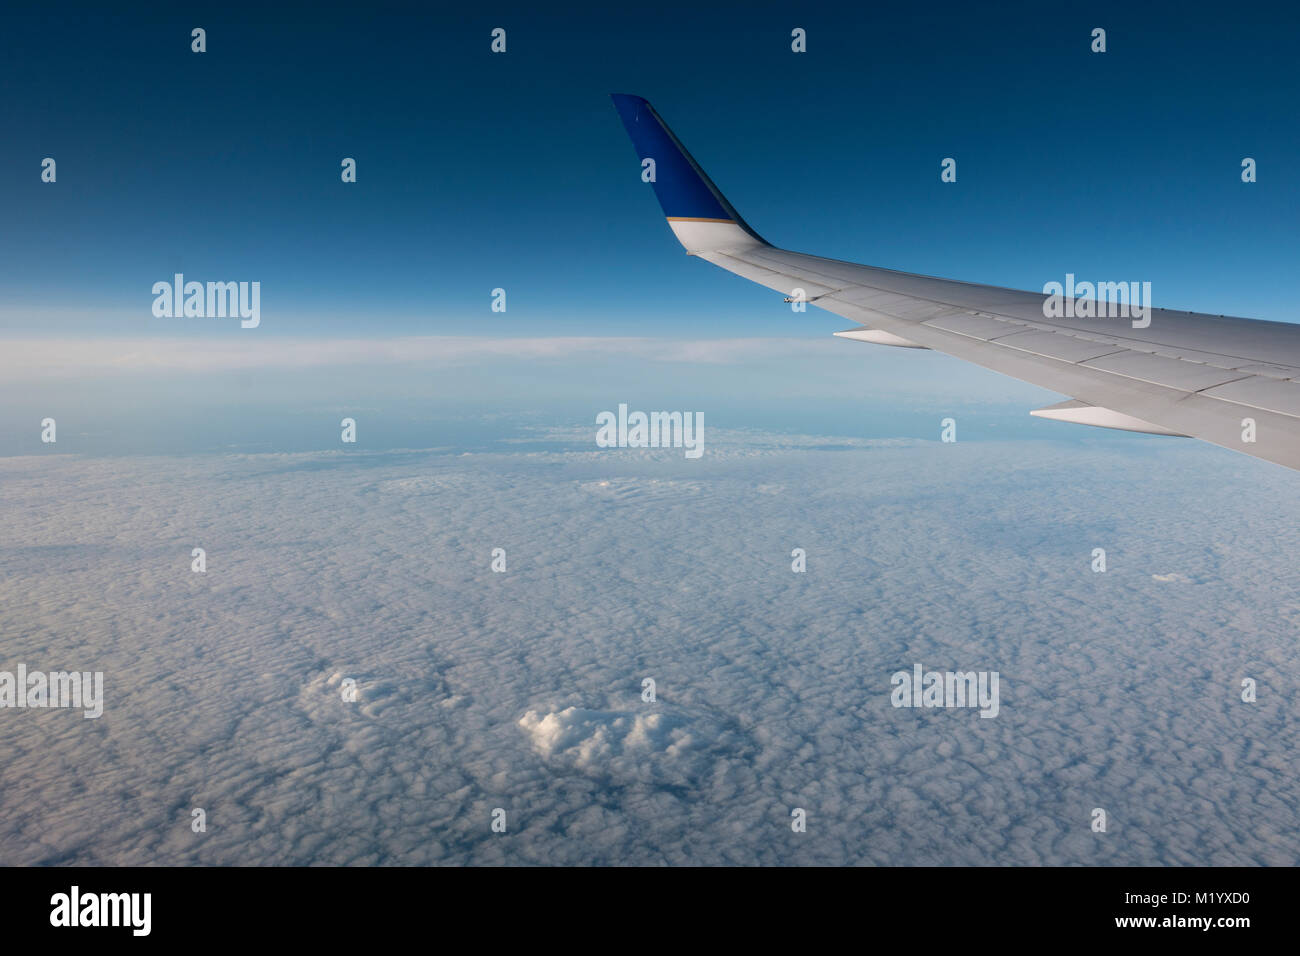 View out the window of a United passenger plane at the cloudy sky below. - Stock Image